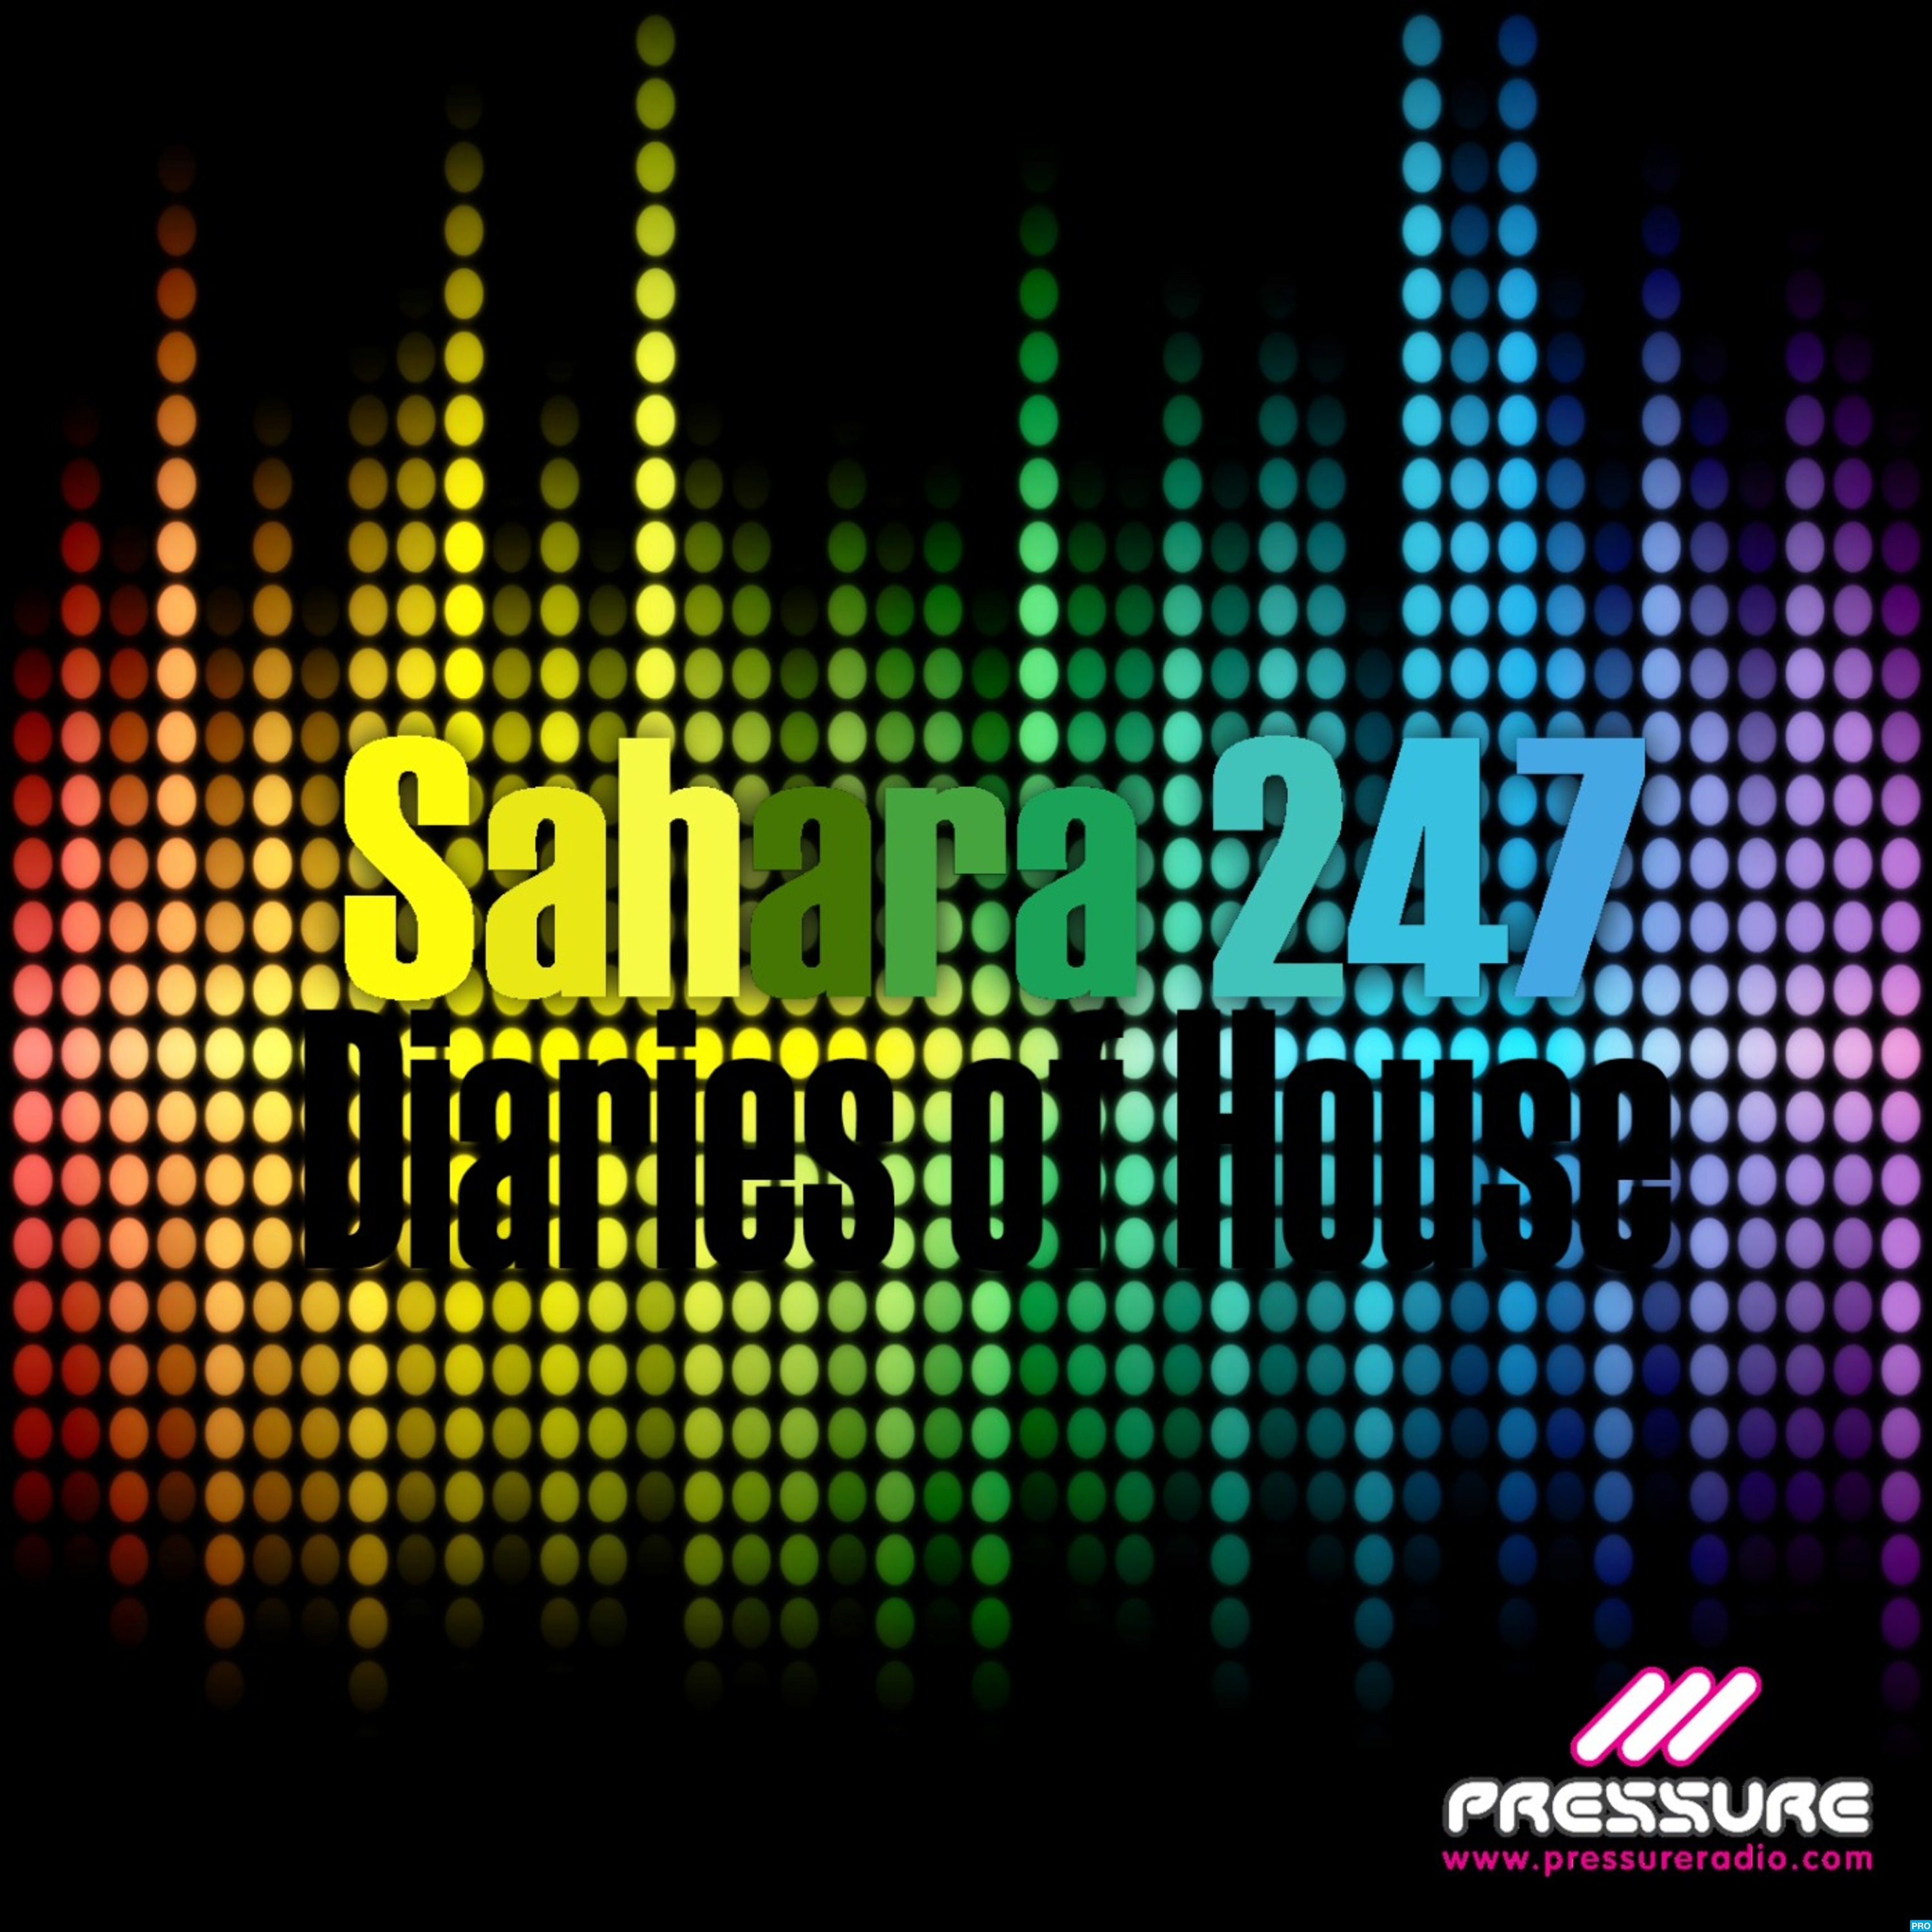 2Pm Bst To Aest best vocal booth weekender pressure cooker mixes podcasts